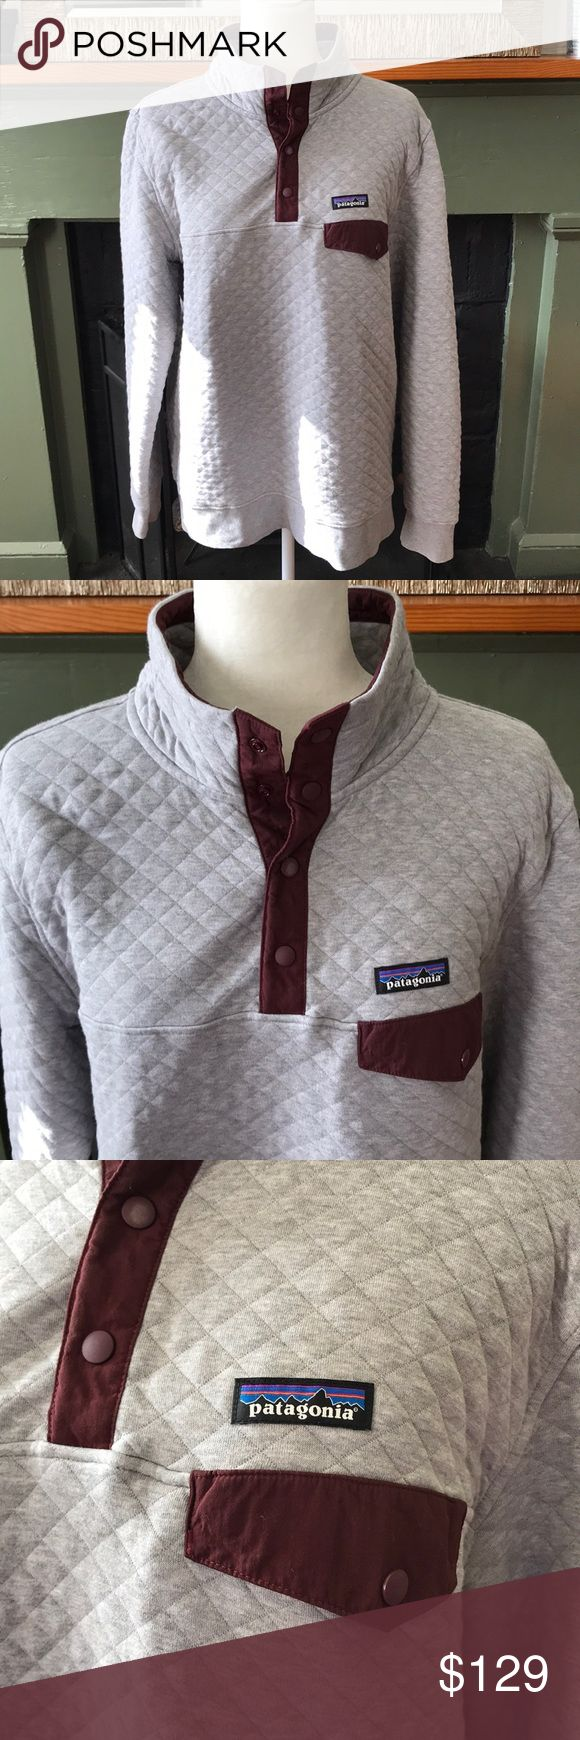 Patagonia Organic Cotton Quilted pullover Patagonia quilted pullover in grey and ruby. Excellent condition.  Bought it mid-January, wore it a few times, but would like a different size.   Women's size Large. Patagonia Sweaters